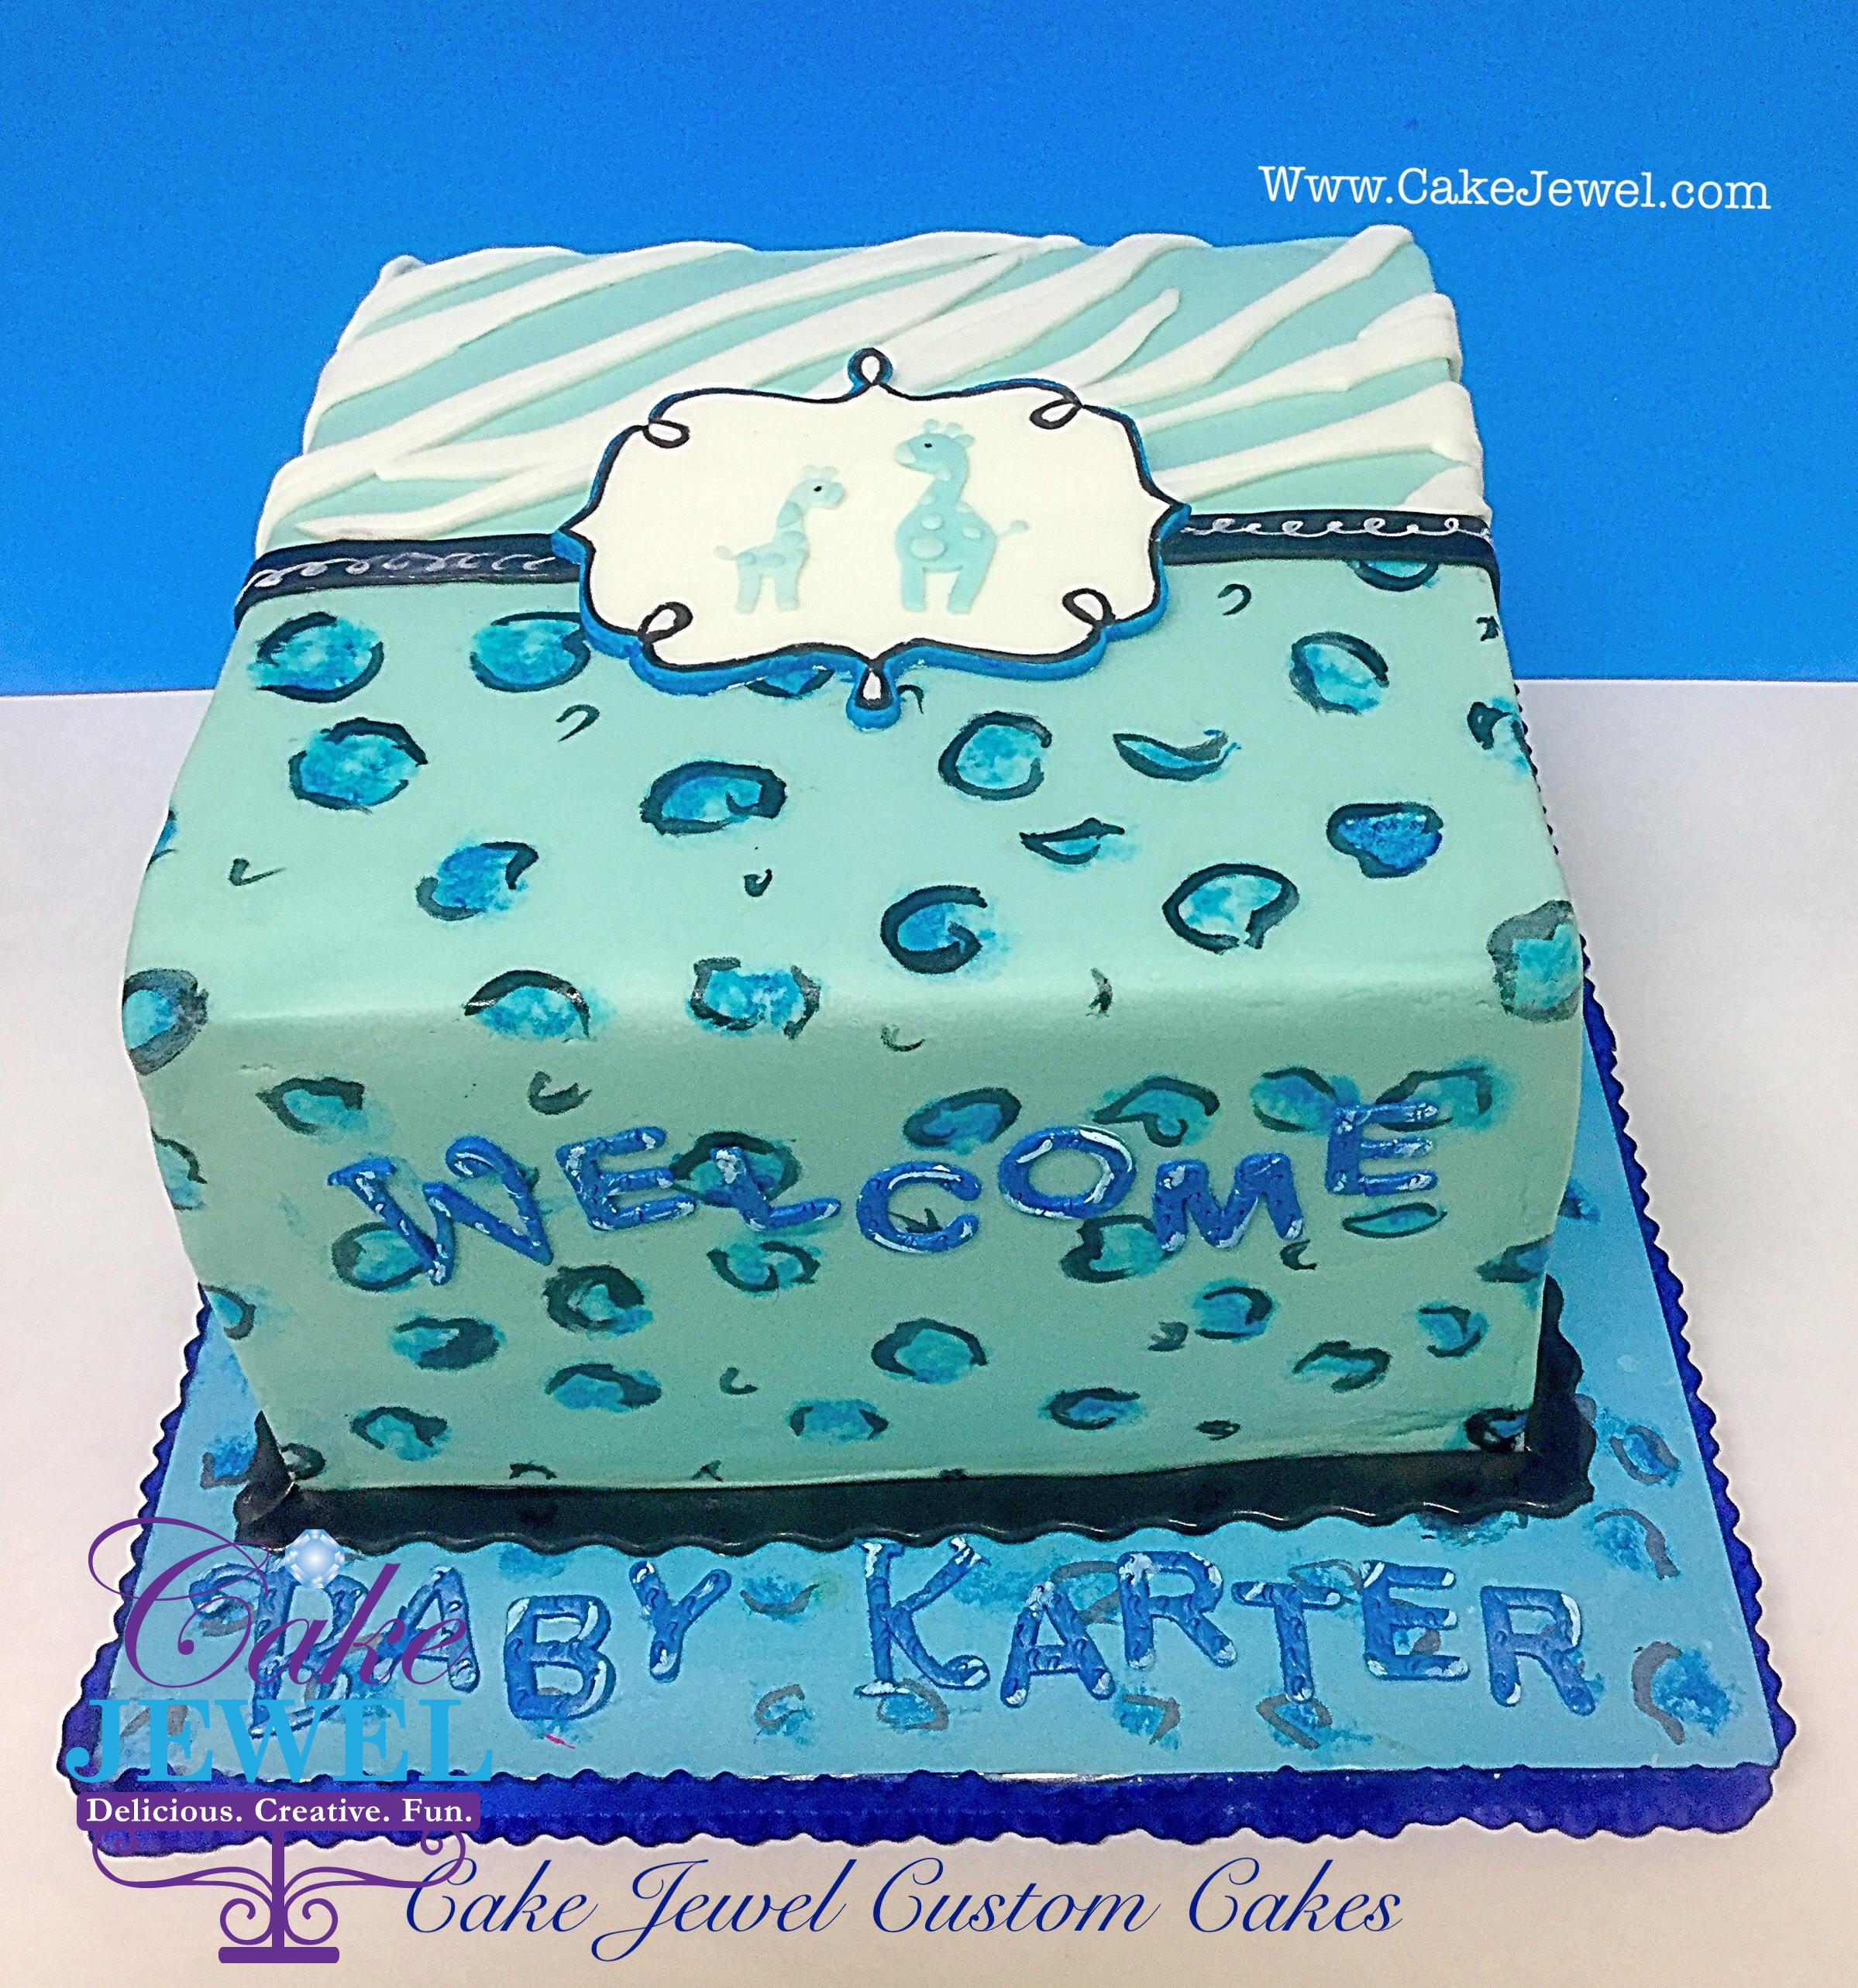 Blue & white giraffe theme Babyshower cake